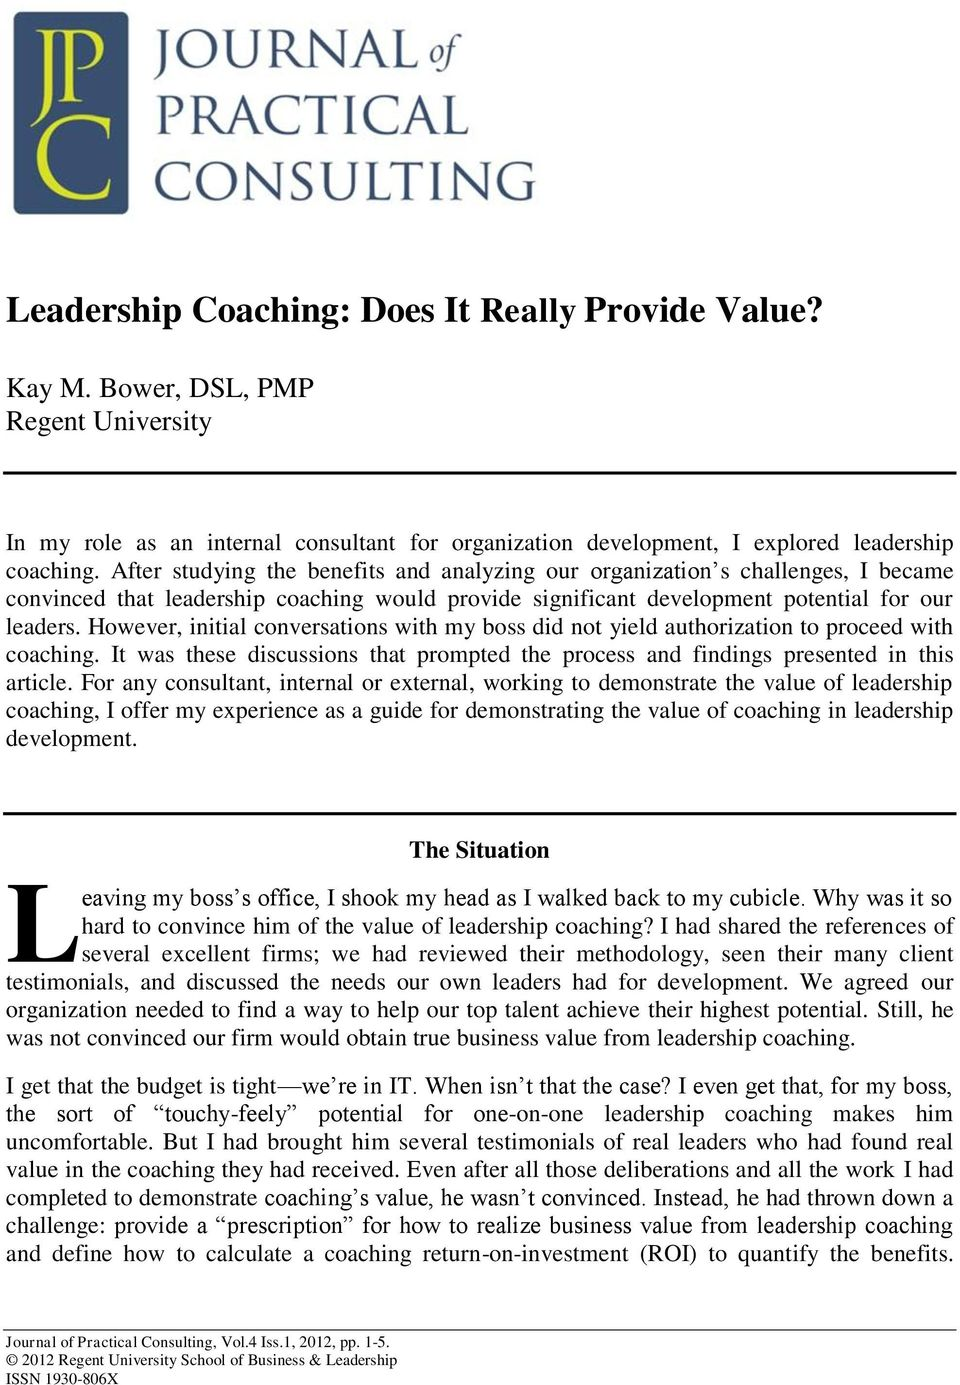 However, initial conversations with my boss did not yield authorization to proceed with coaching. It was these discussions that prompted the process and findings presented in this article.